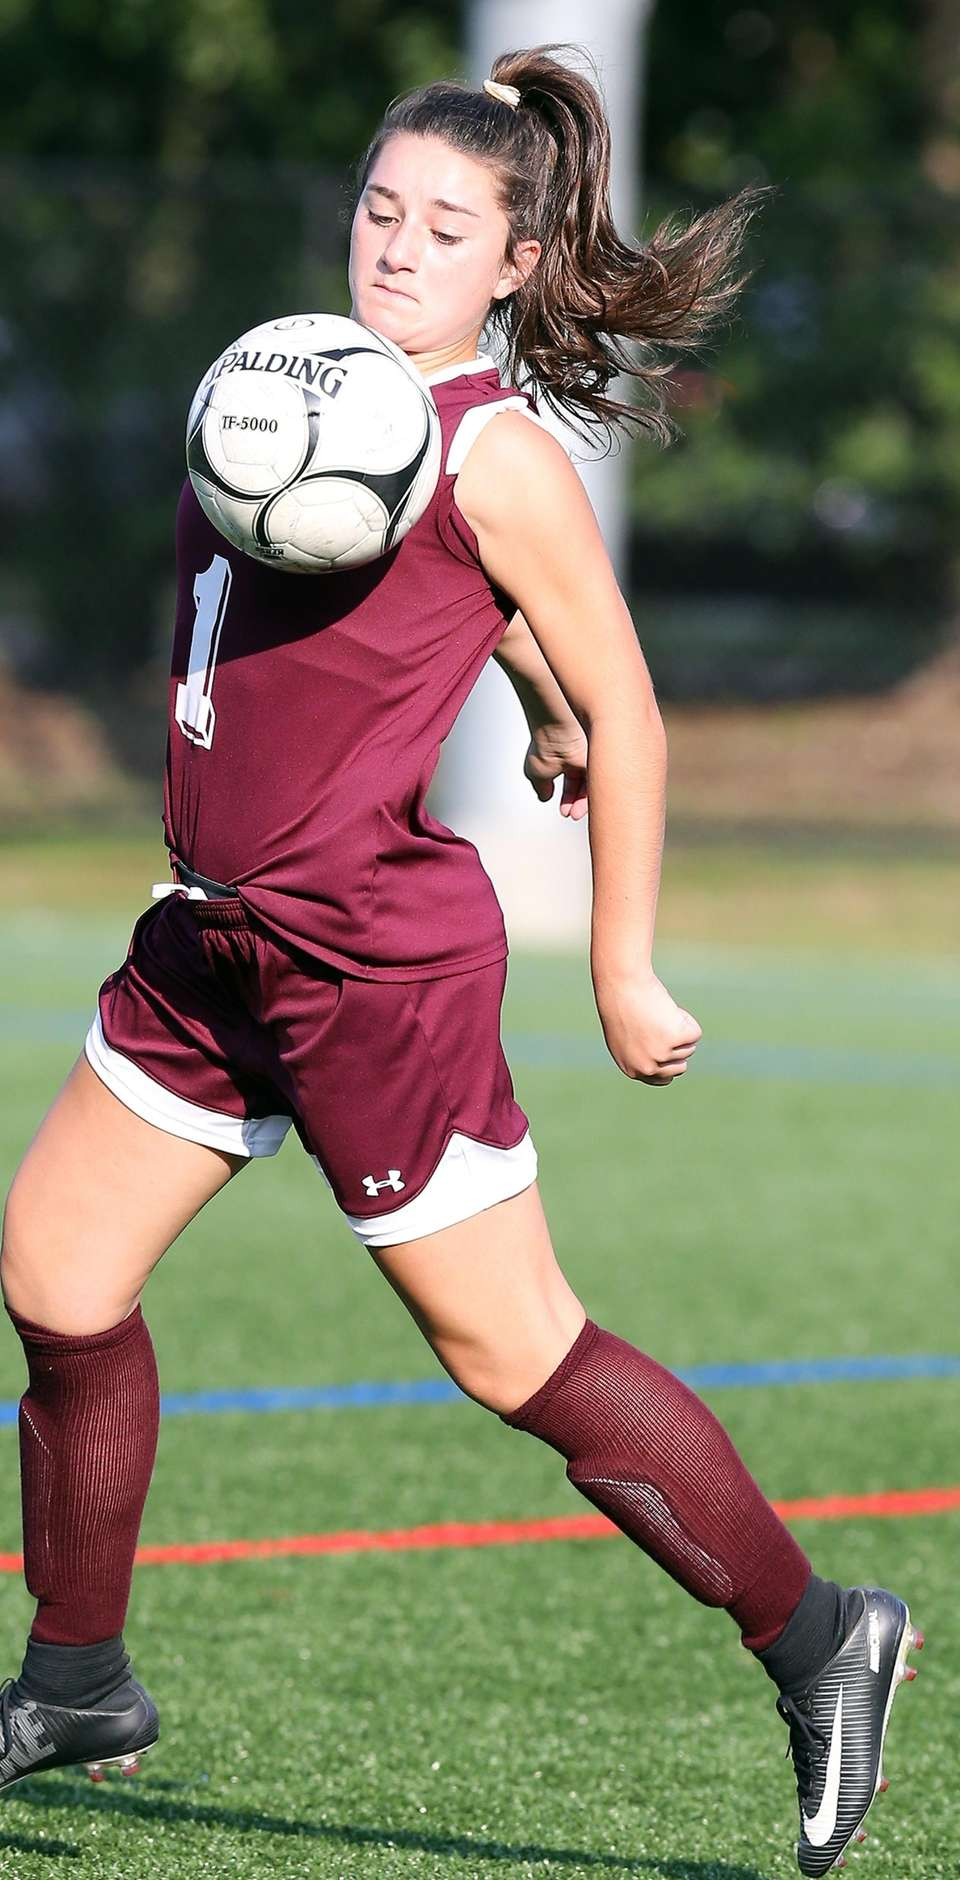 North Shore's Patricia Cammarano keeps the ball in